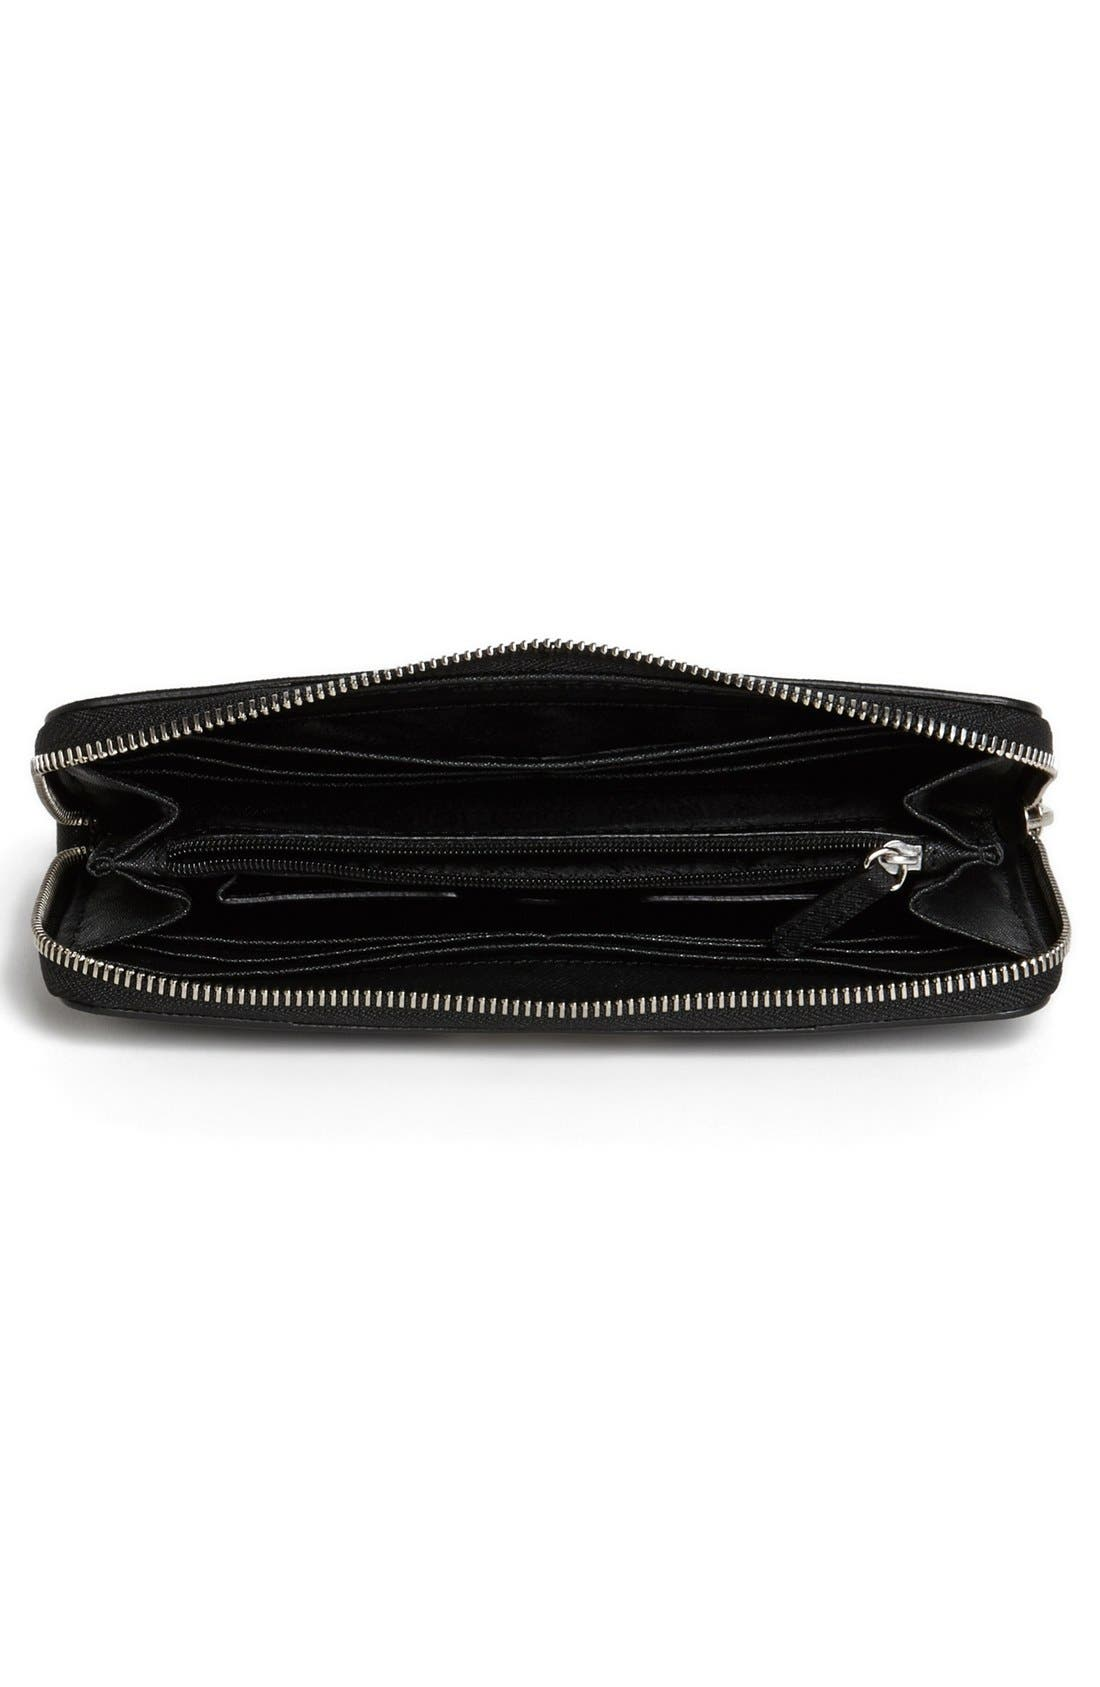 Alternate Image 3  - MICHAEL Michael Kors 'Tech Continental' Leather Wallet